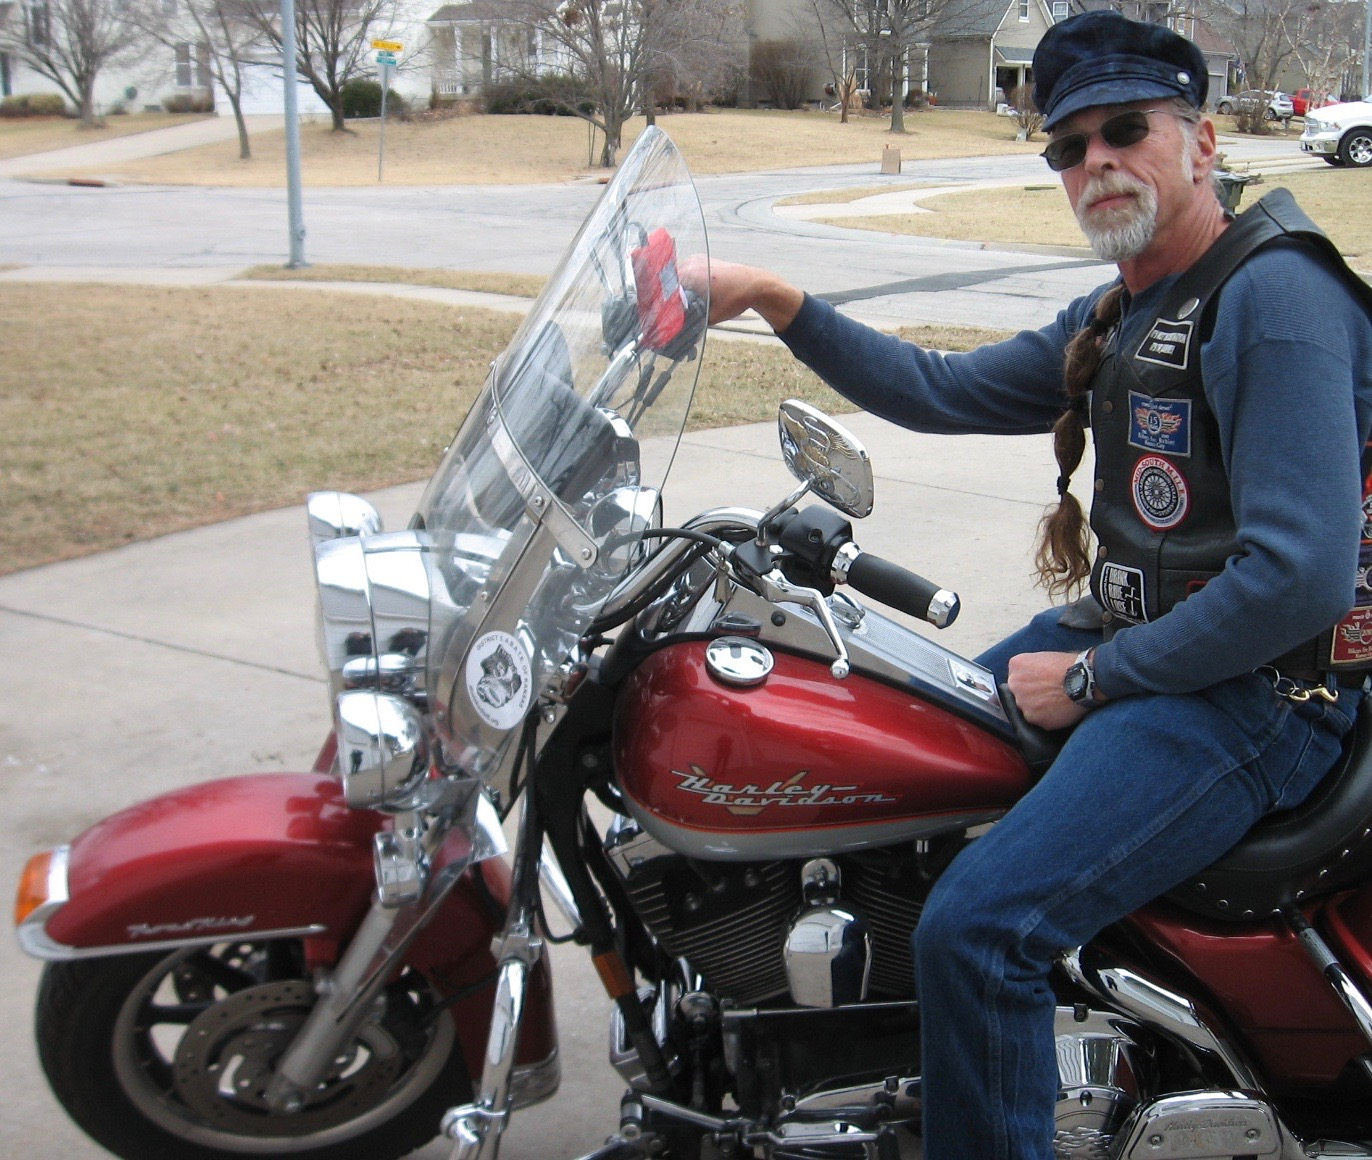 Tony with Fisherman Fiddler Biker Cap on Motorcycle